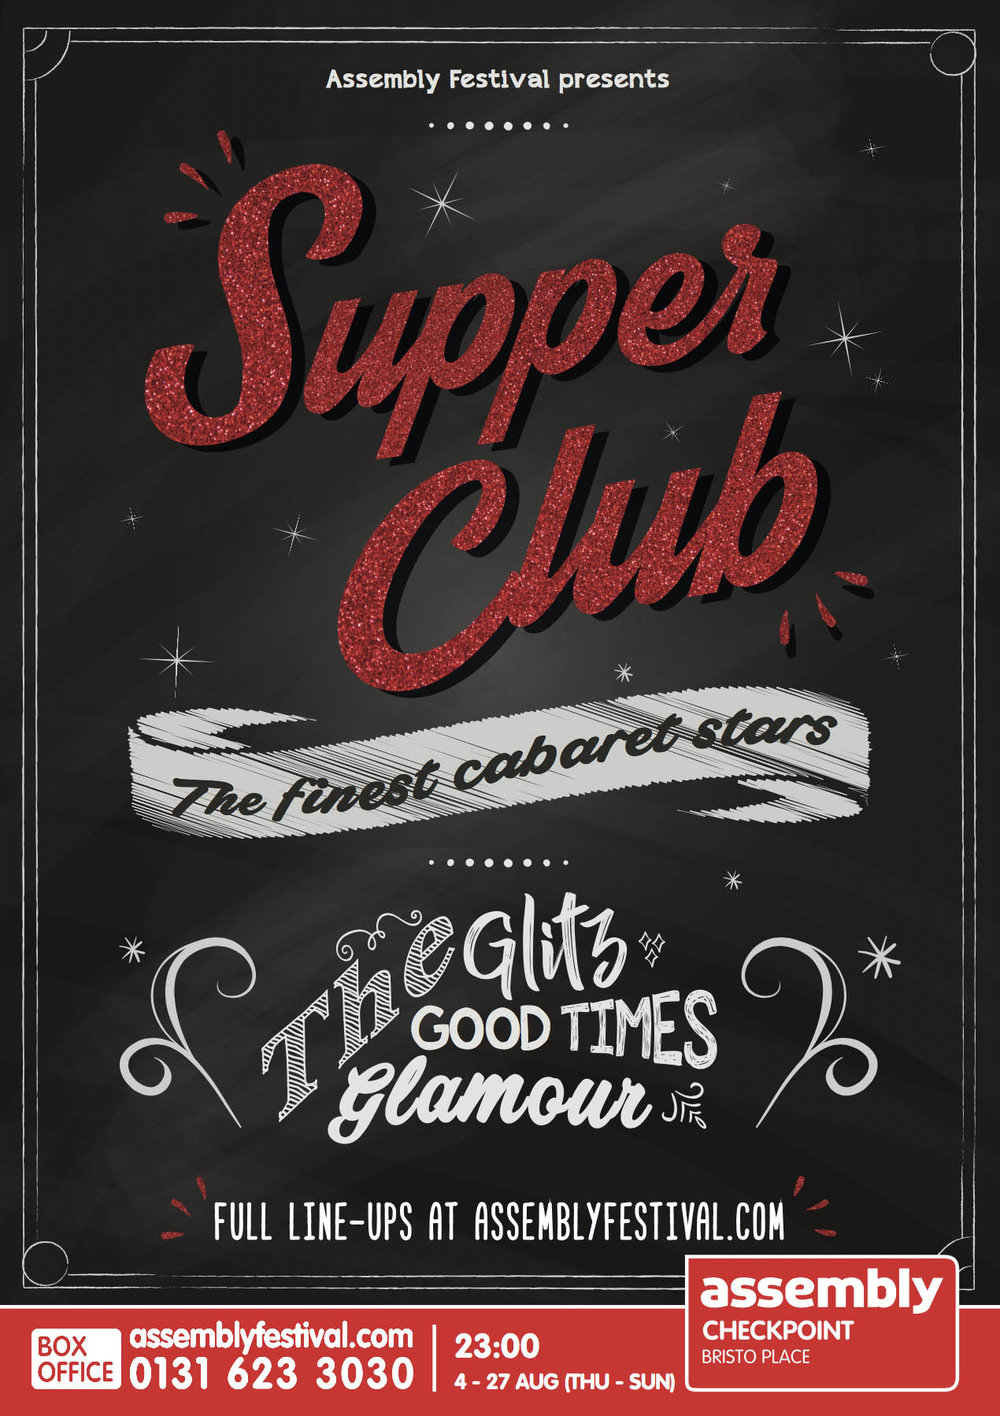 A5_SupperClub01.jpg